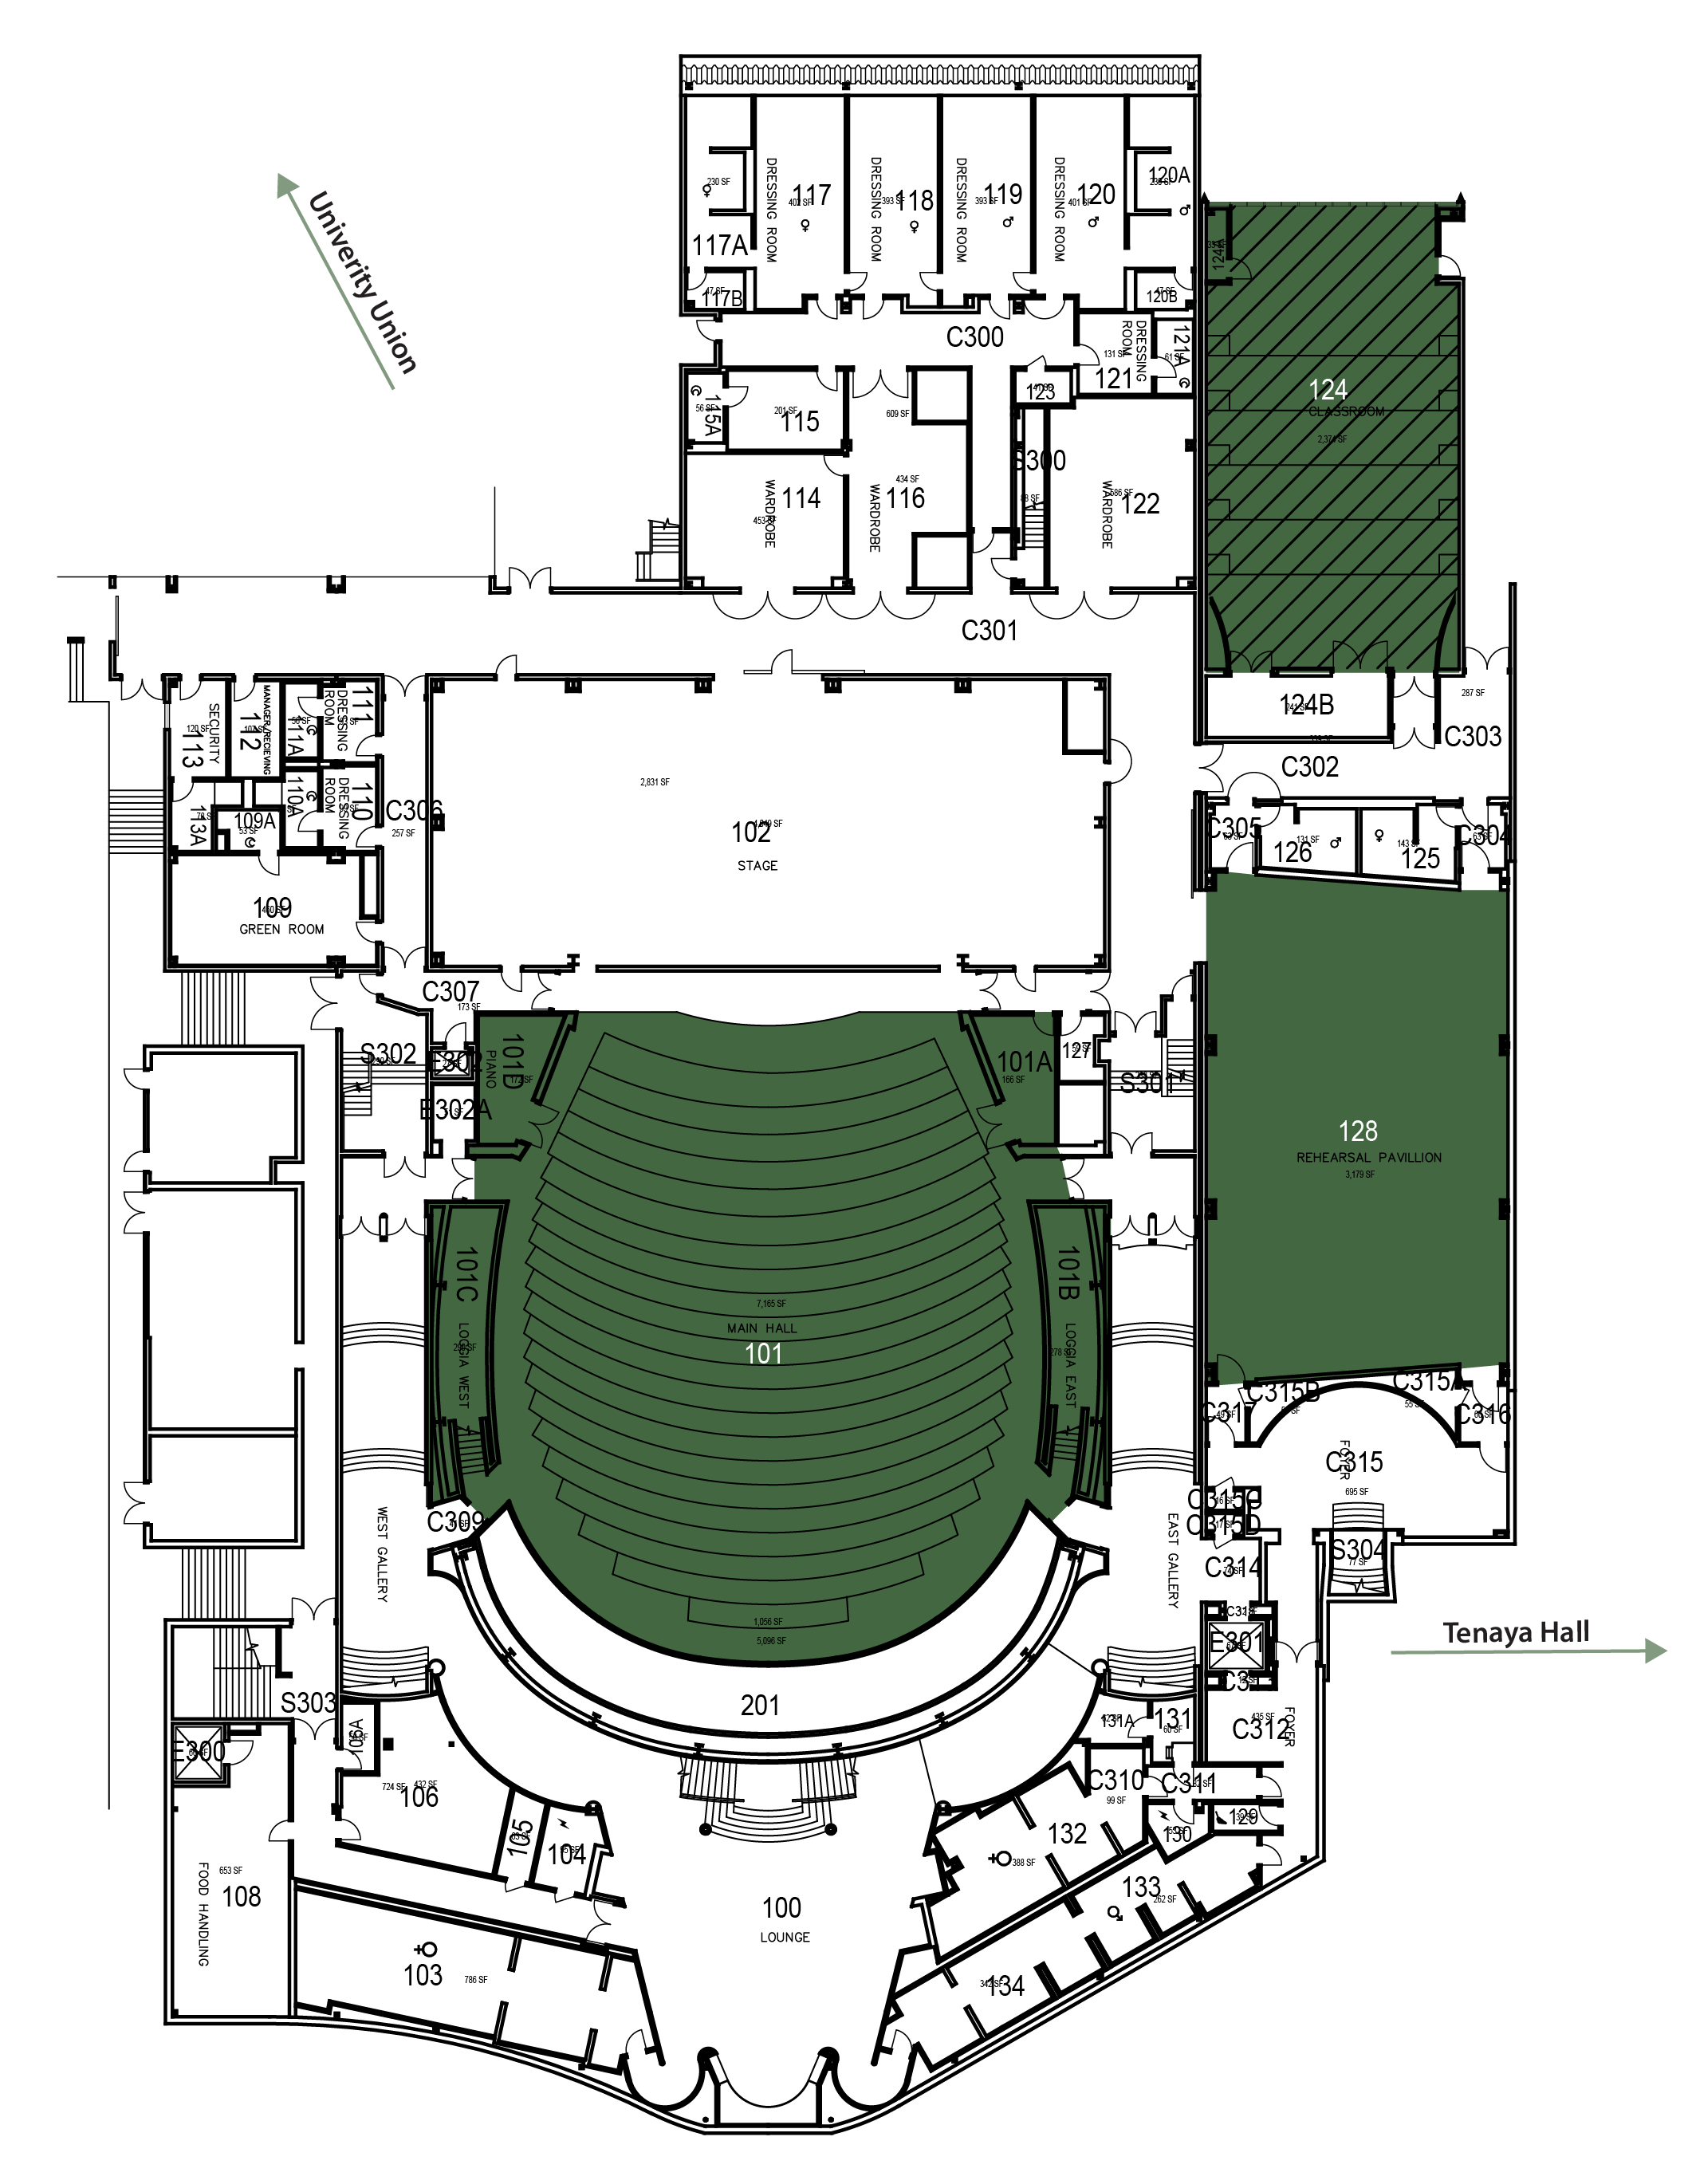 PAC Floorplan